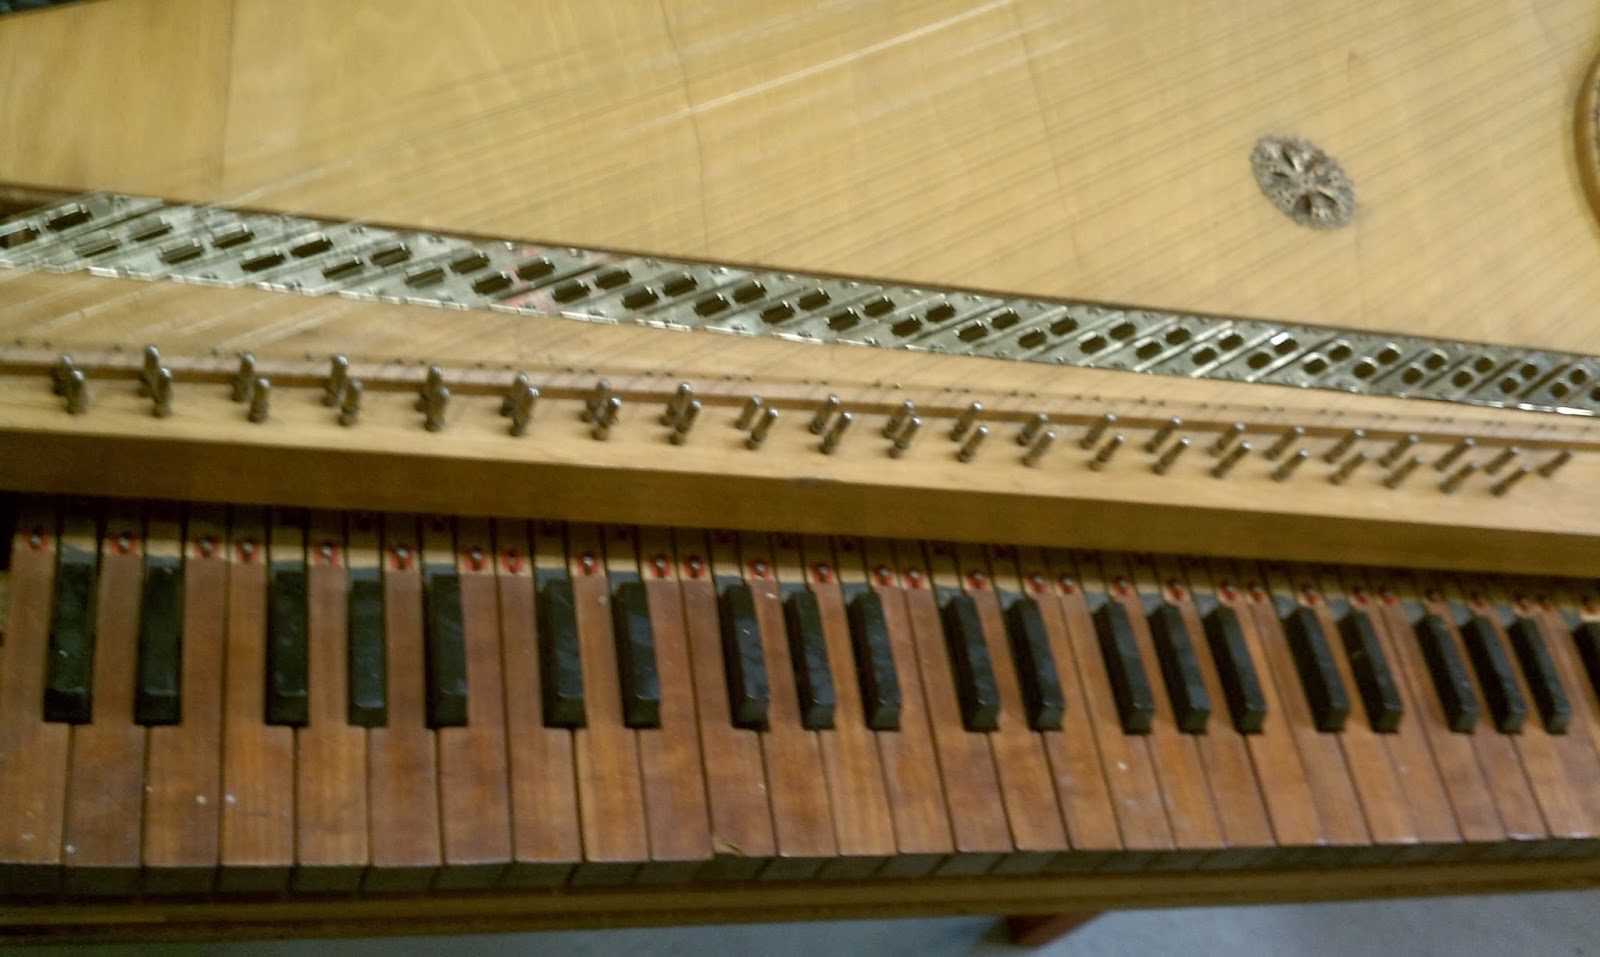 Jon's Projects: Harpsichord Repair III